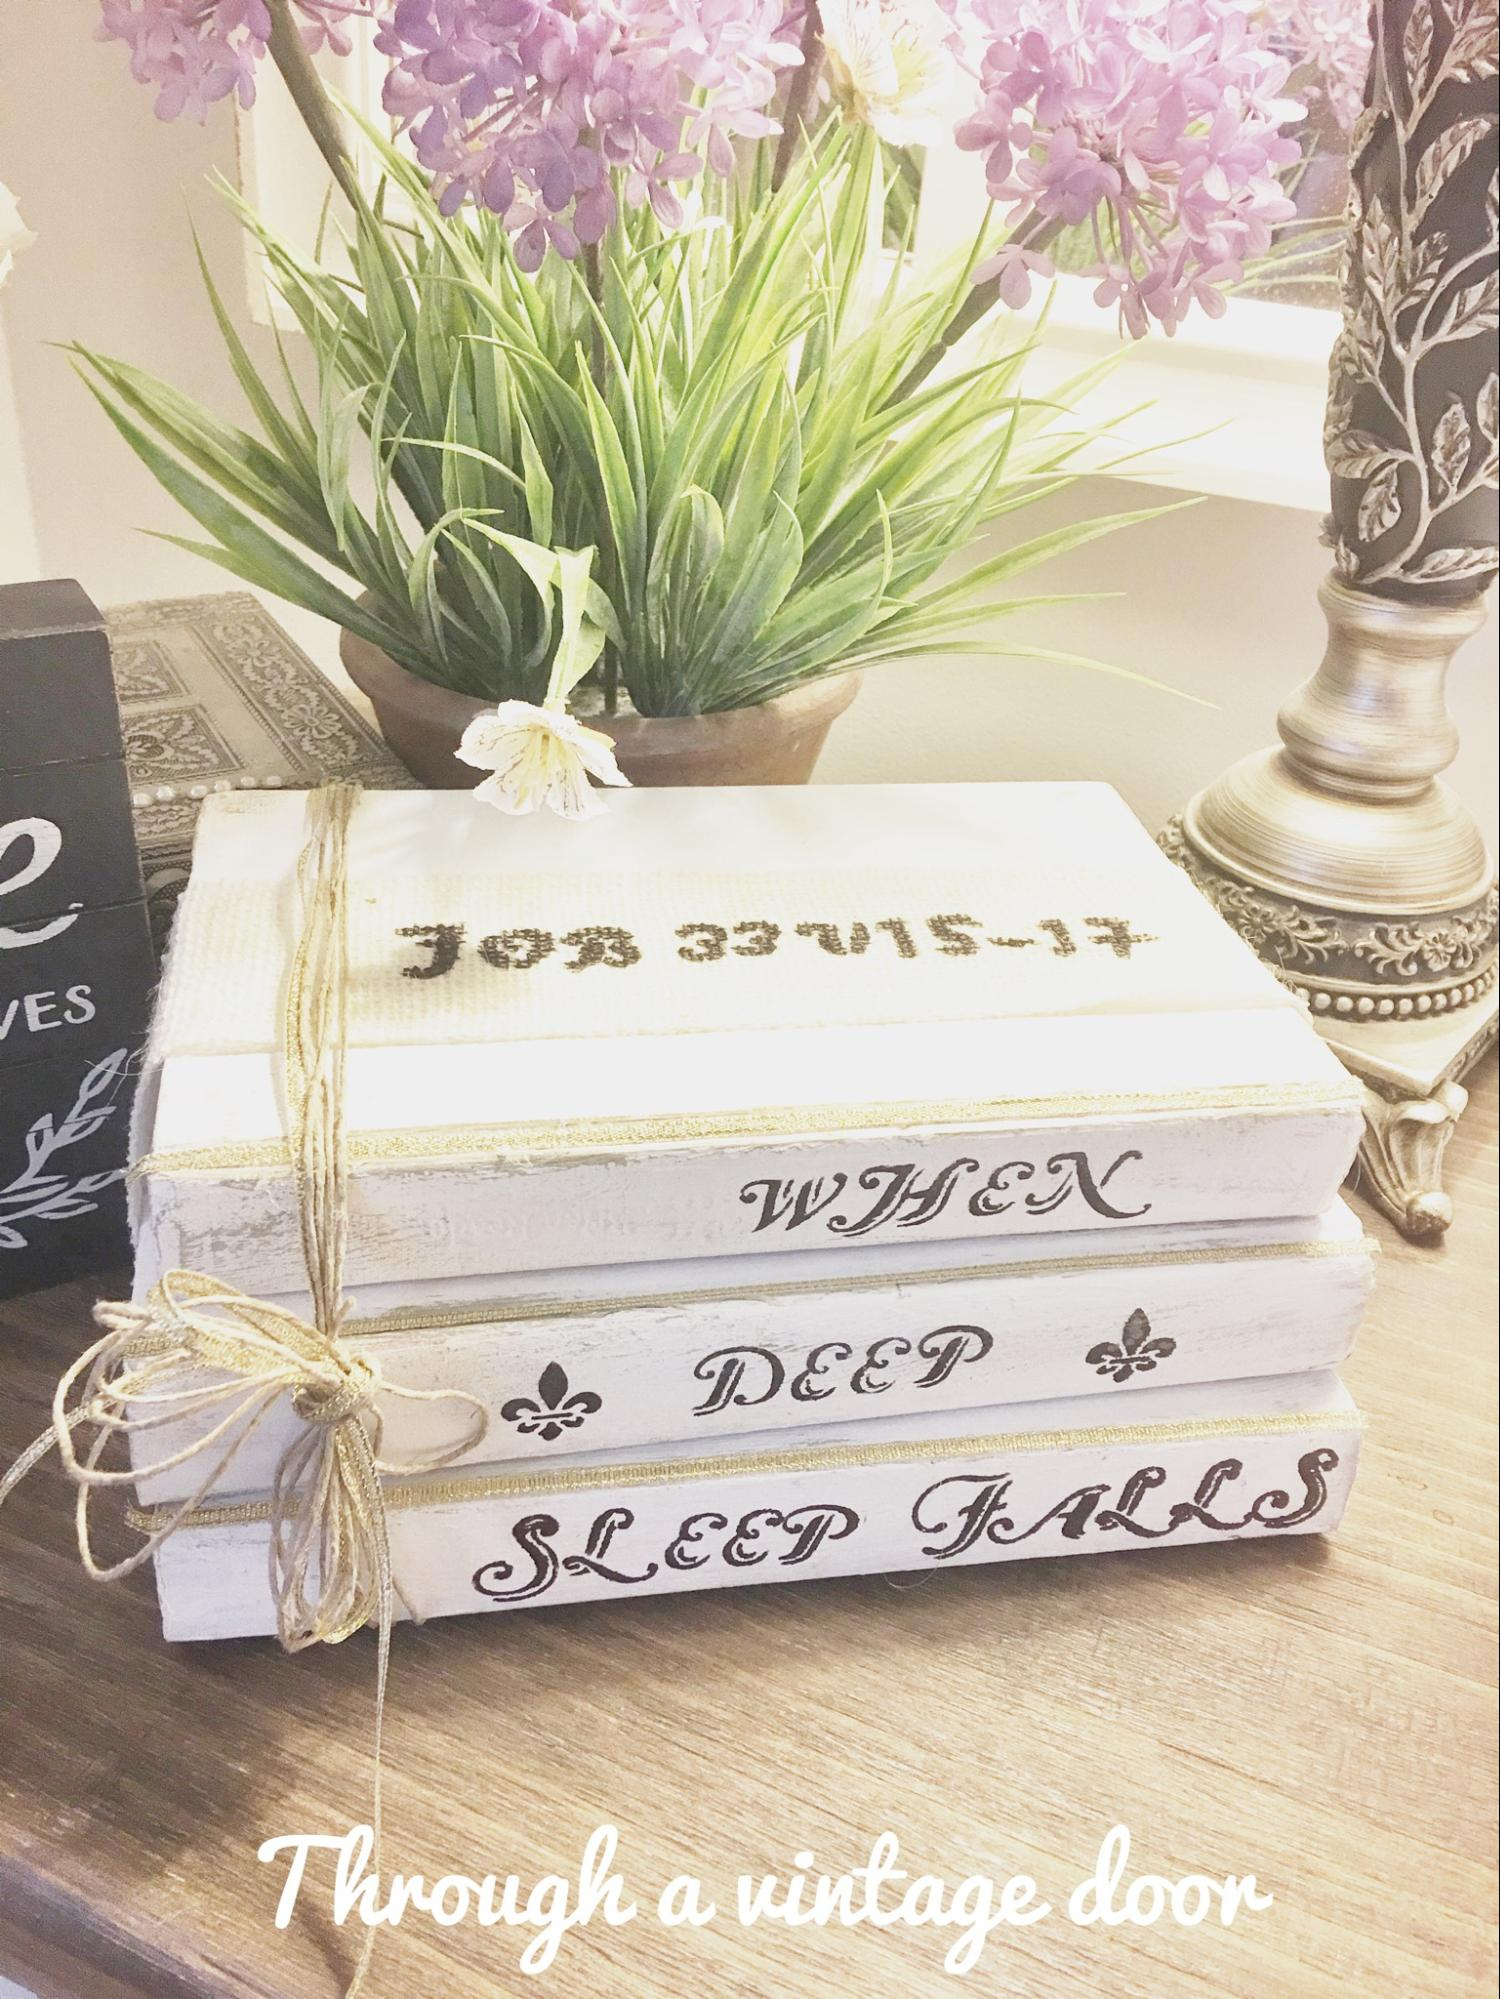 July Stacked Book Challenge